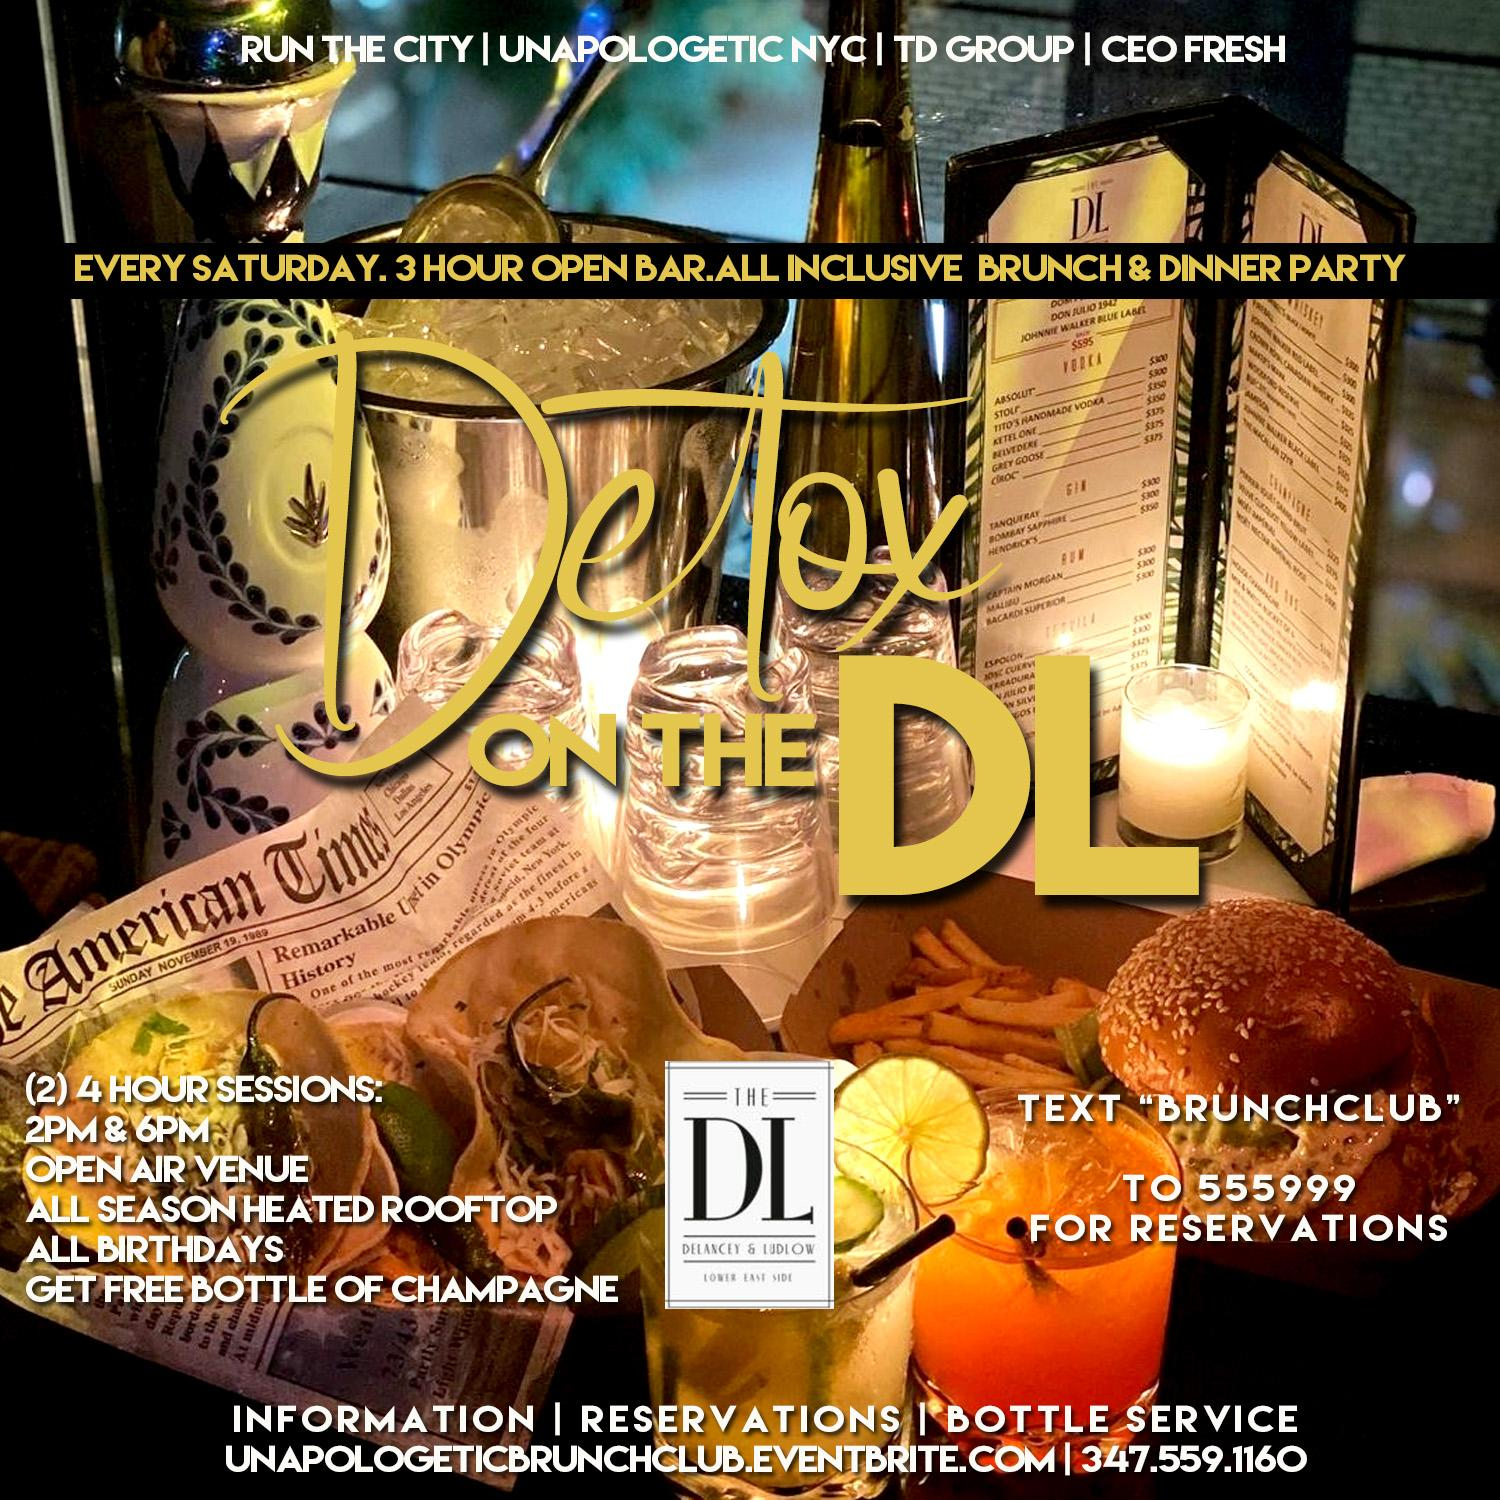 1/16 DETOX SATURDAY ROOFTOP BRUNCH & DINNER PARTY @ THE DL